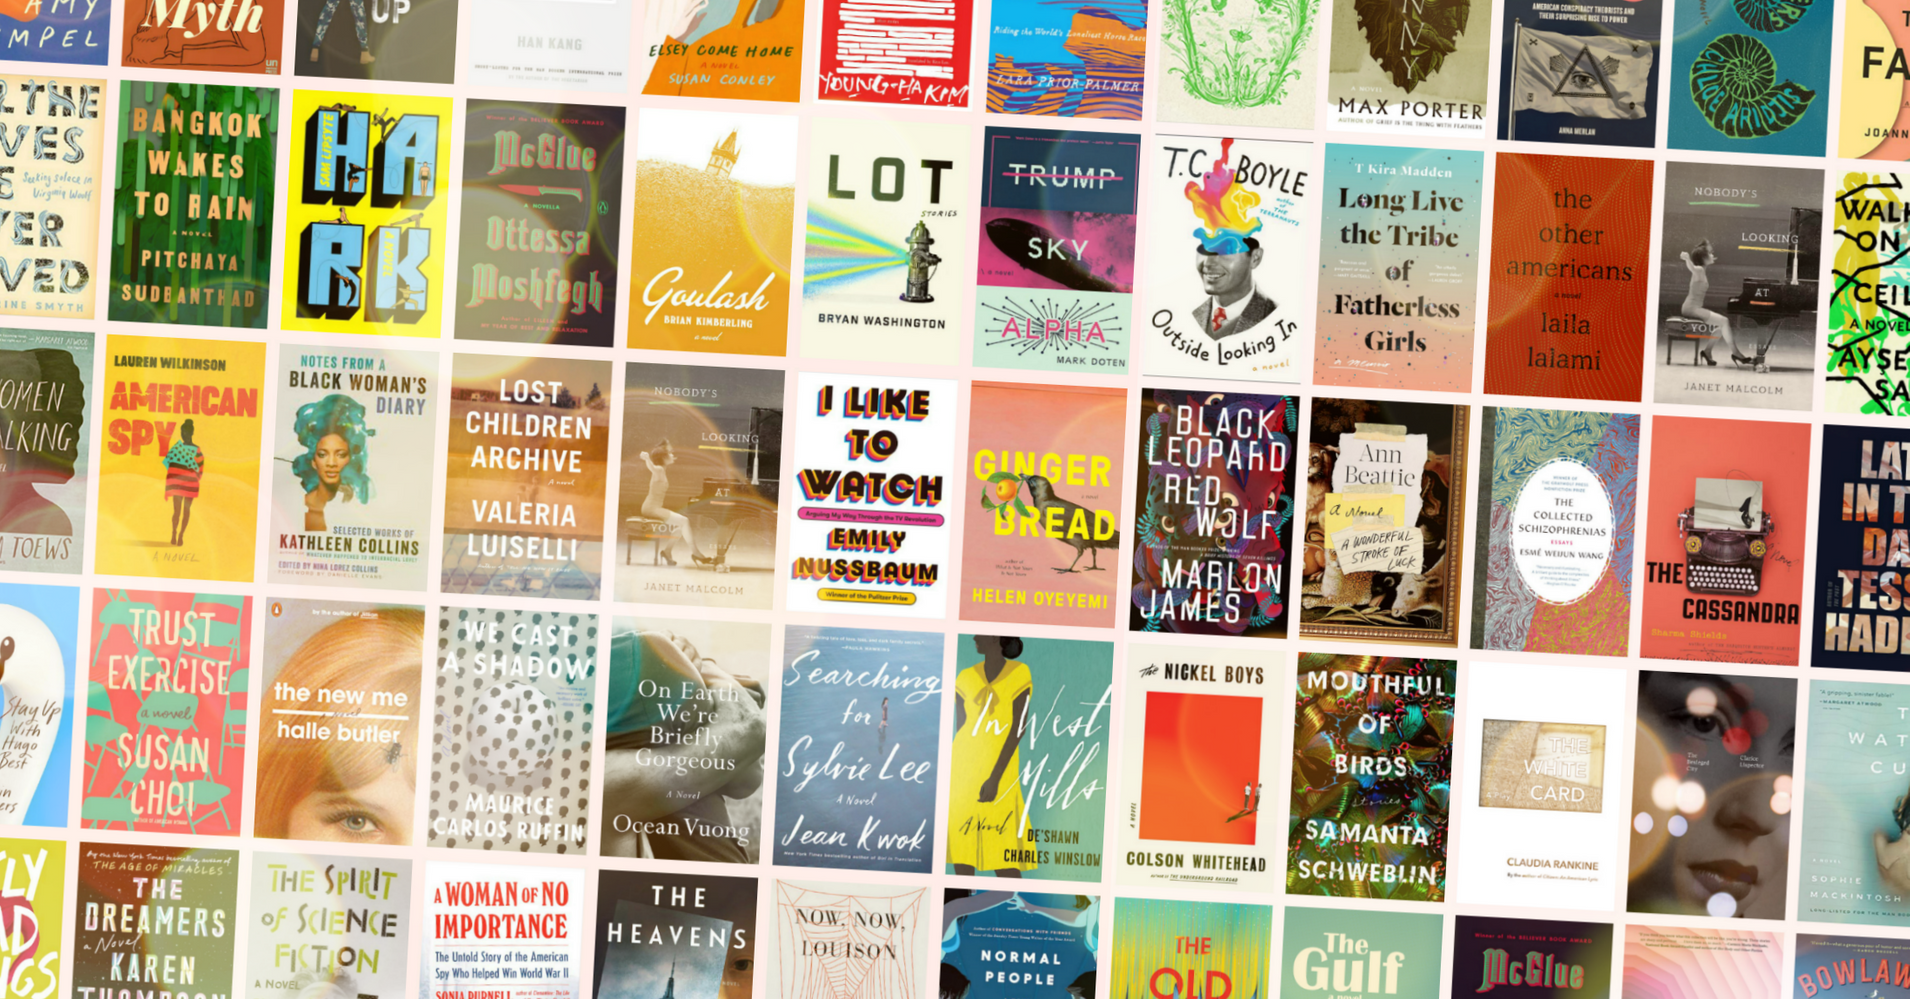 61 Books We're Looking Forward To Reading In 2019